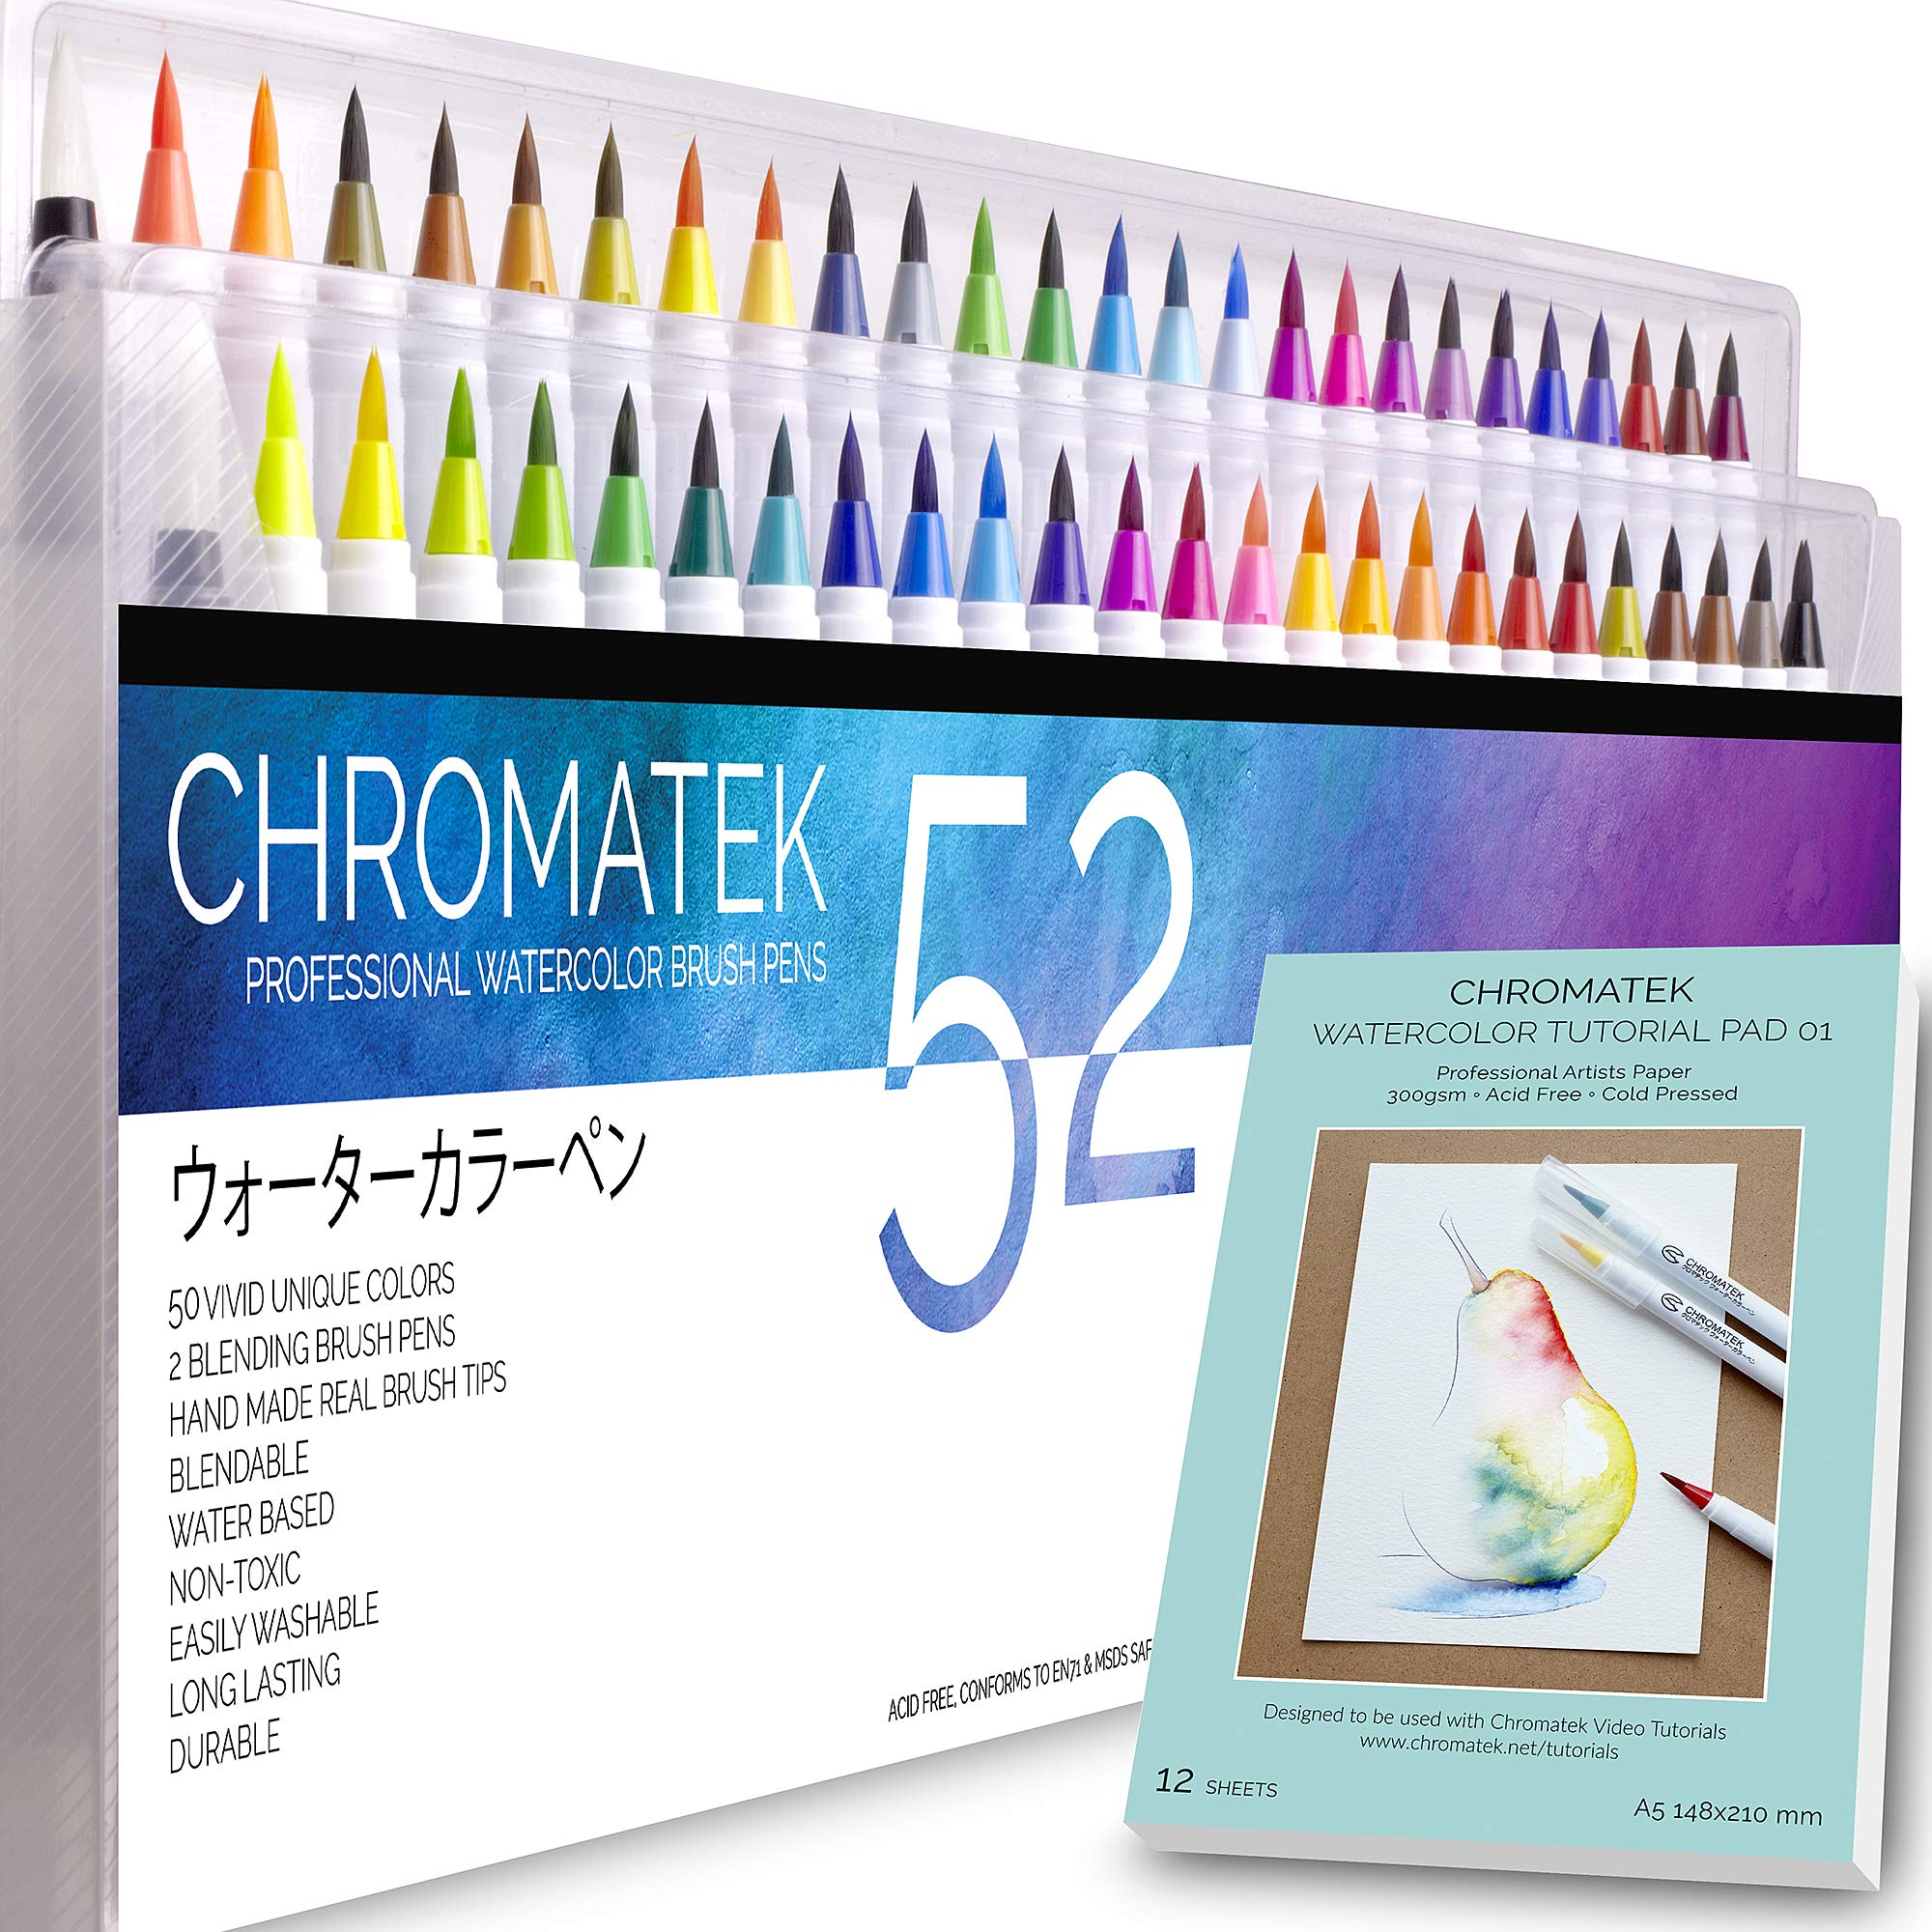 52 Watercolor Brush Pens, Tutorial Pad and Online Video Series by Chromatek. Real Brush Tip. Vivid. Smooth. Blendable. Long Lasting. Professional Artist Quality. 50 Colors 2 Blending Brushes. by Chromatek